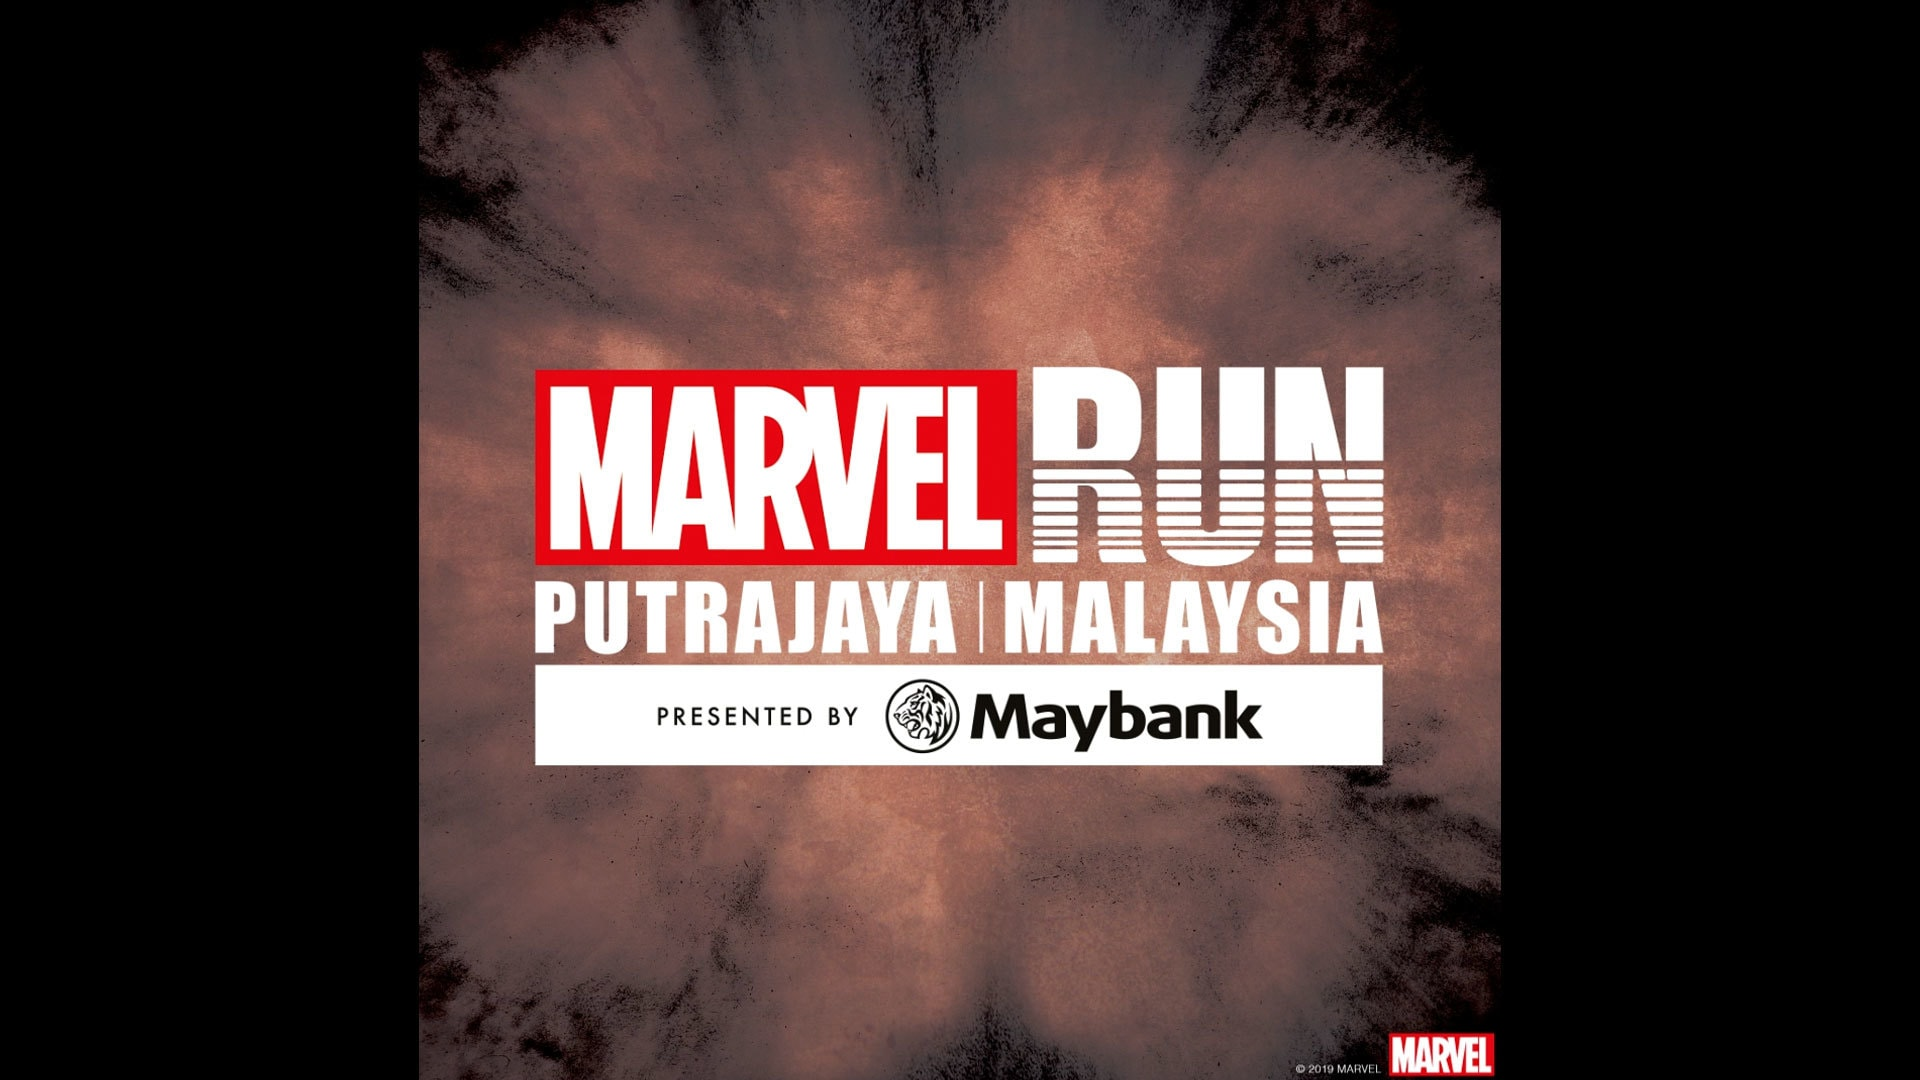 Marvel Run Malaysia - 7 September 2019 | Stay Tuned!